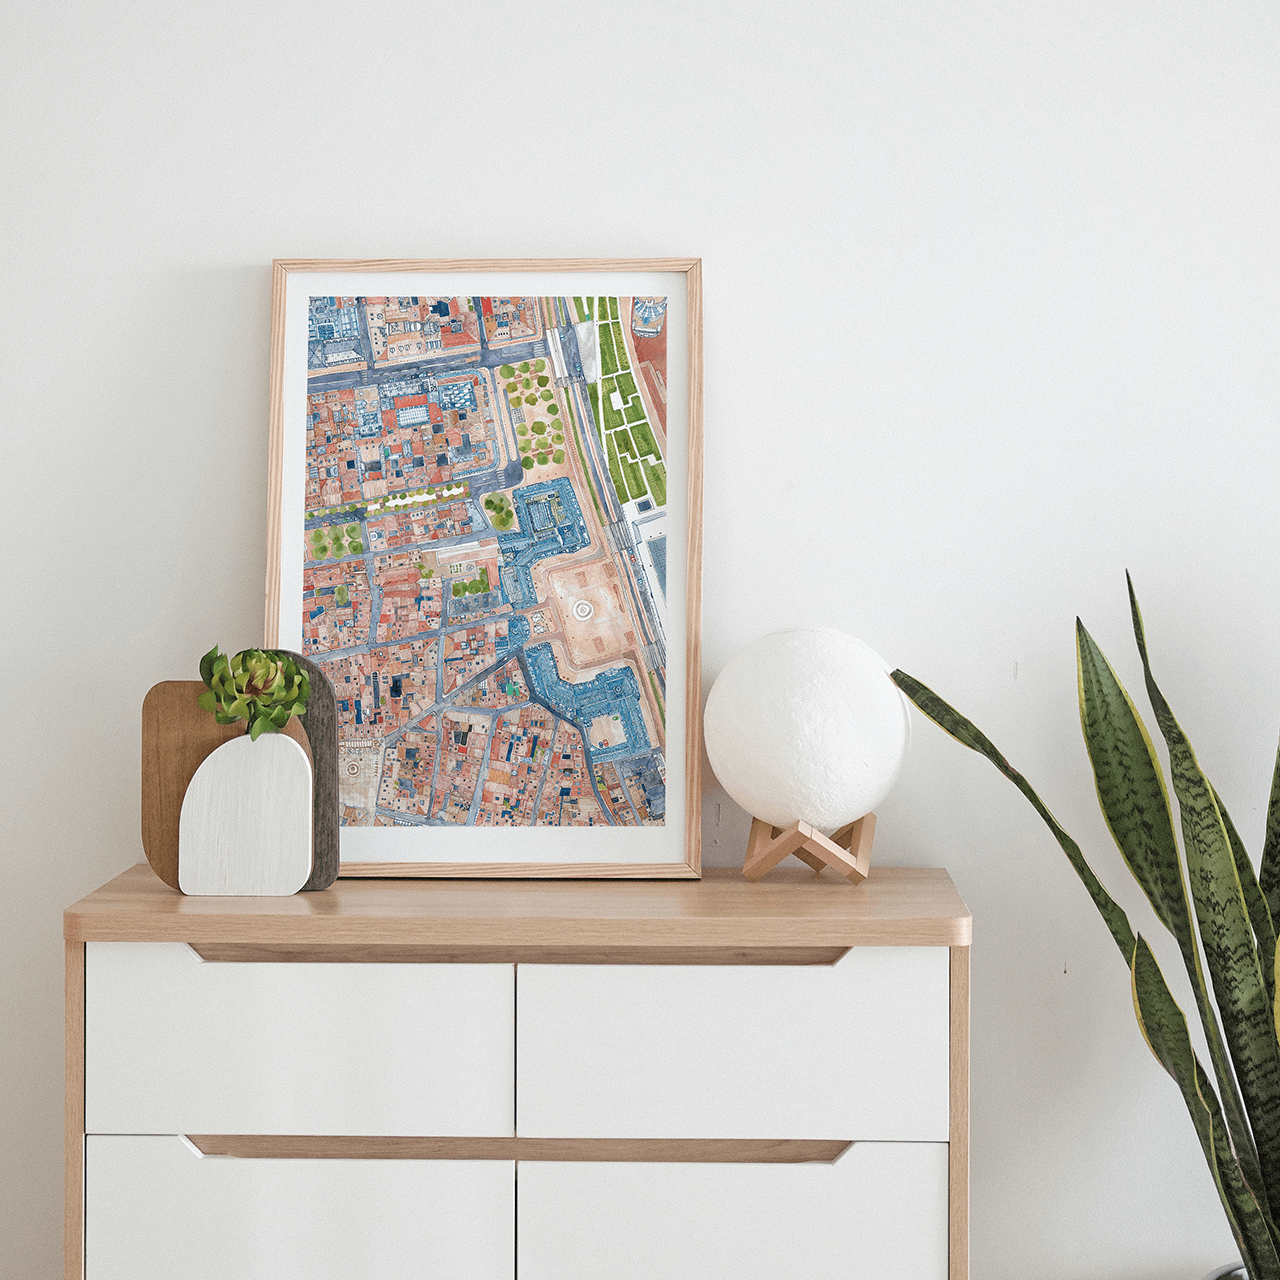 A poster of an illustrated map of Bordeaux